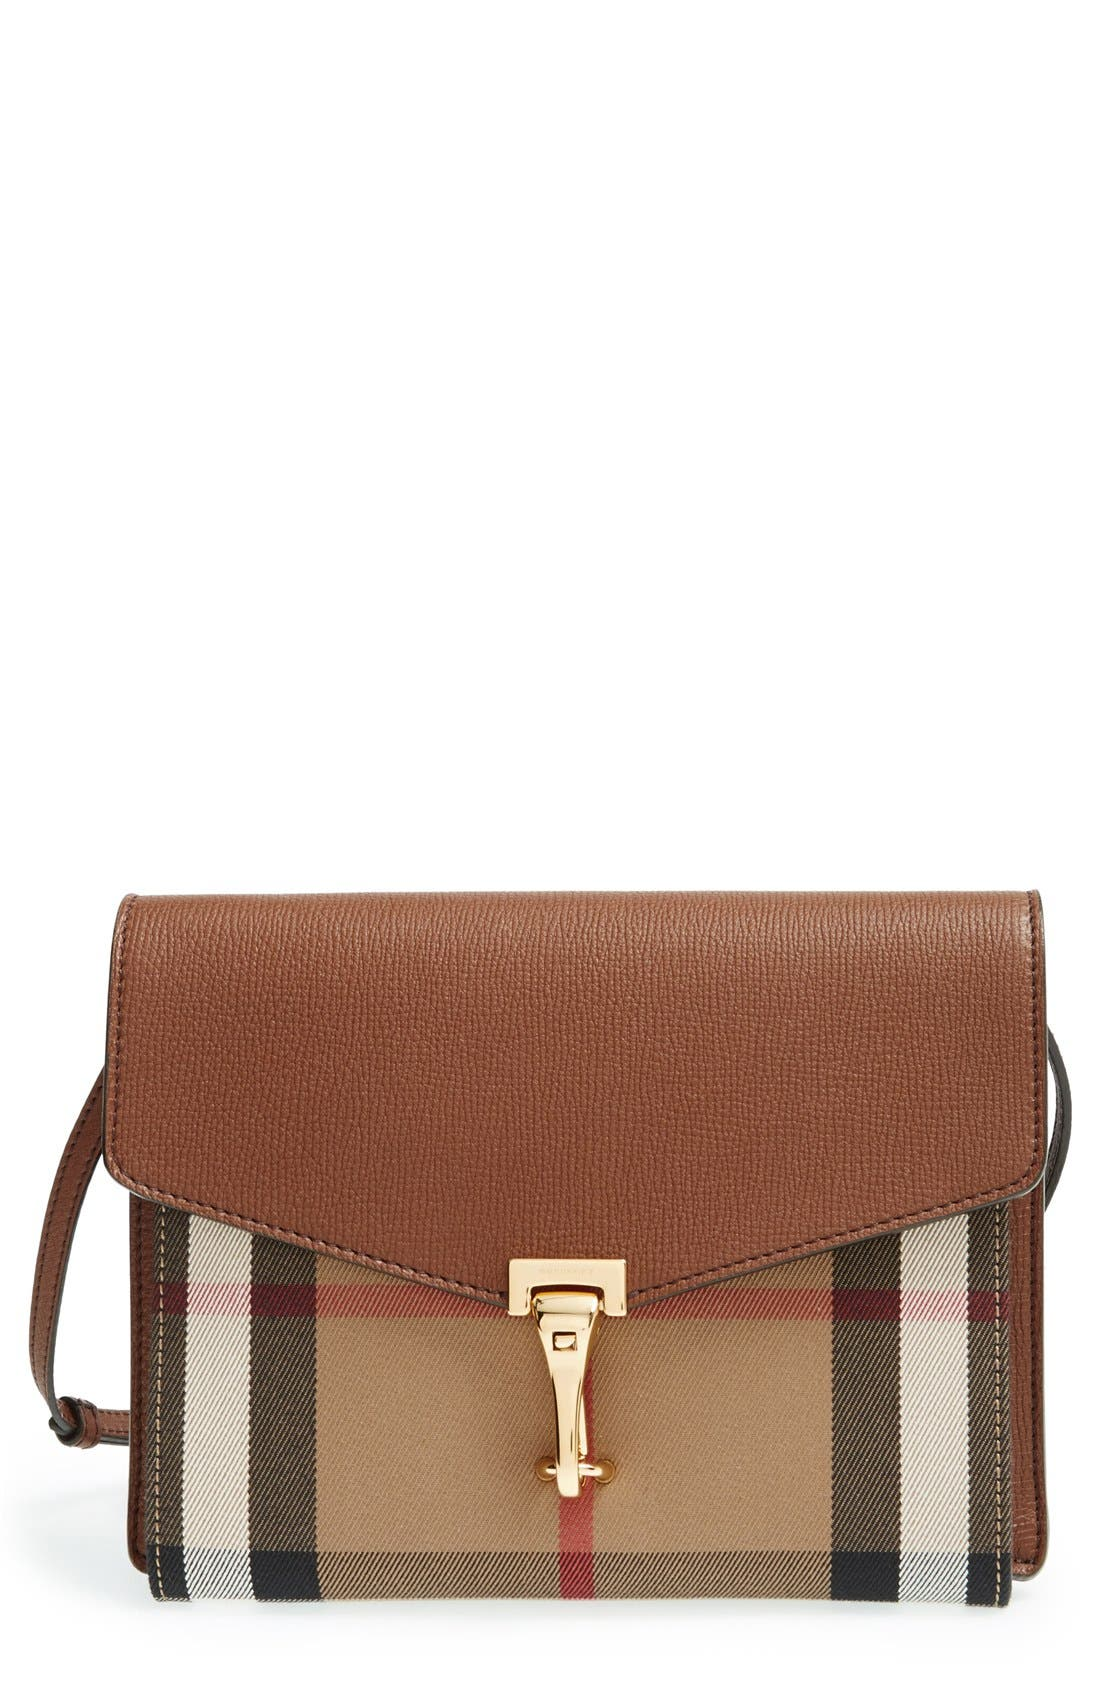 Alternate Image 1 Selected - Burberry 'Small Macken' Check Crossbody Bag